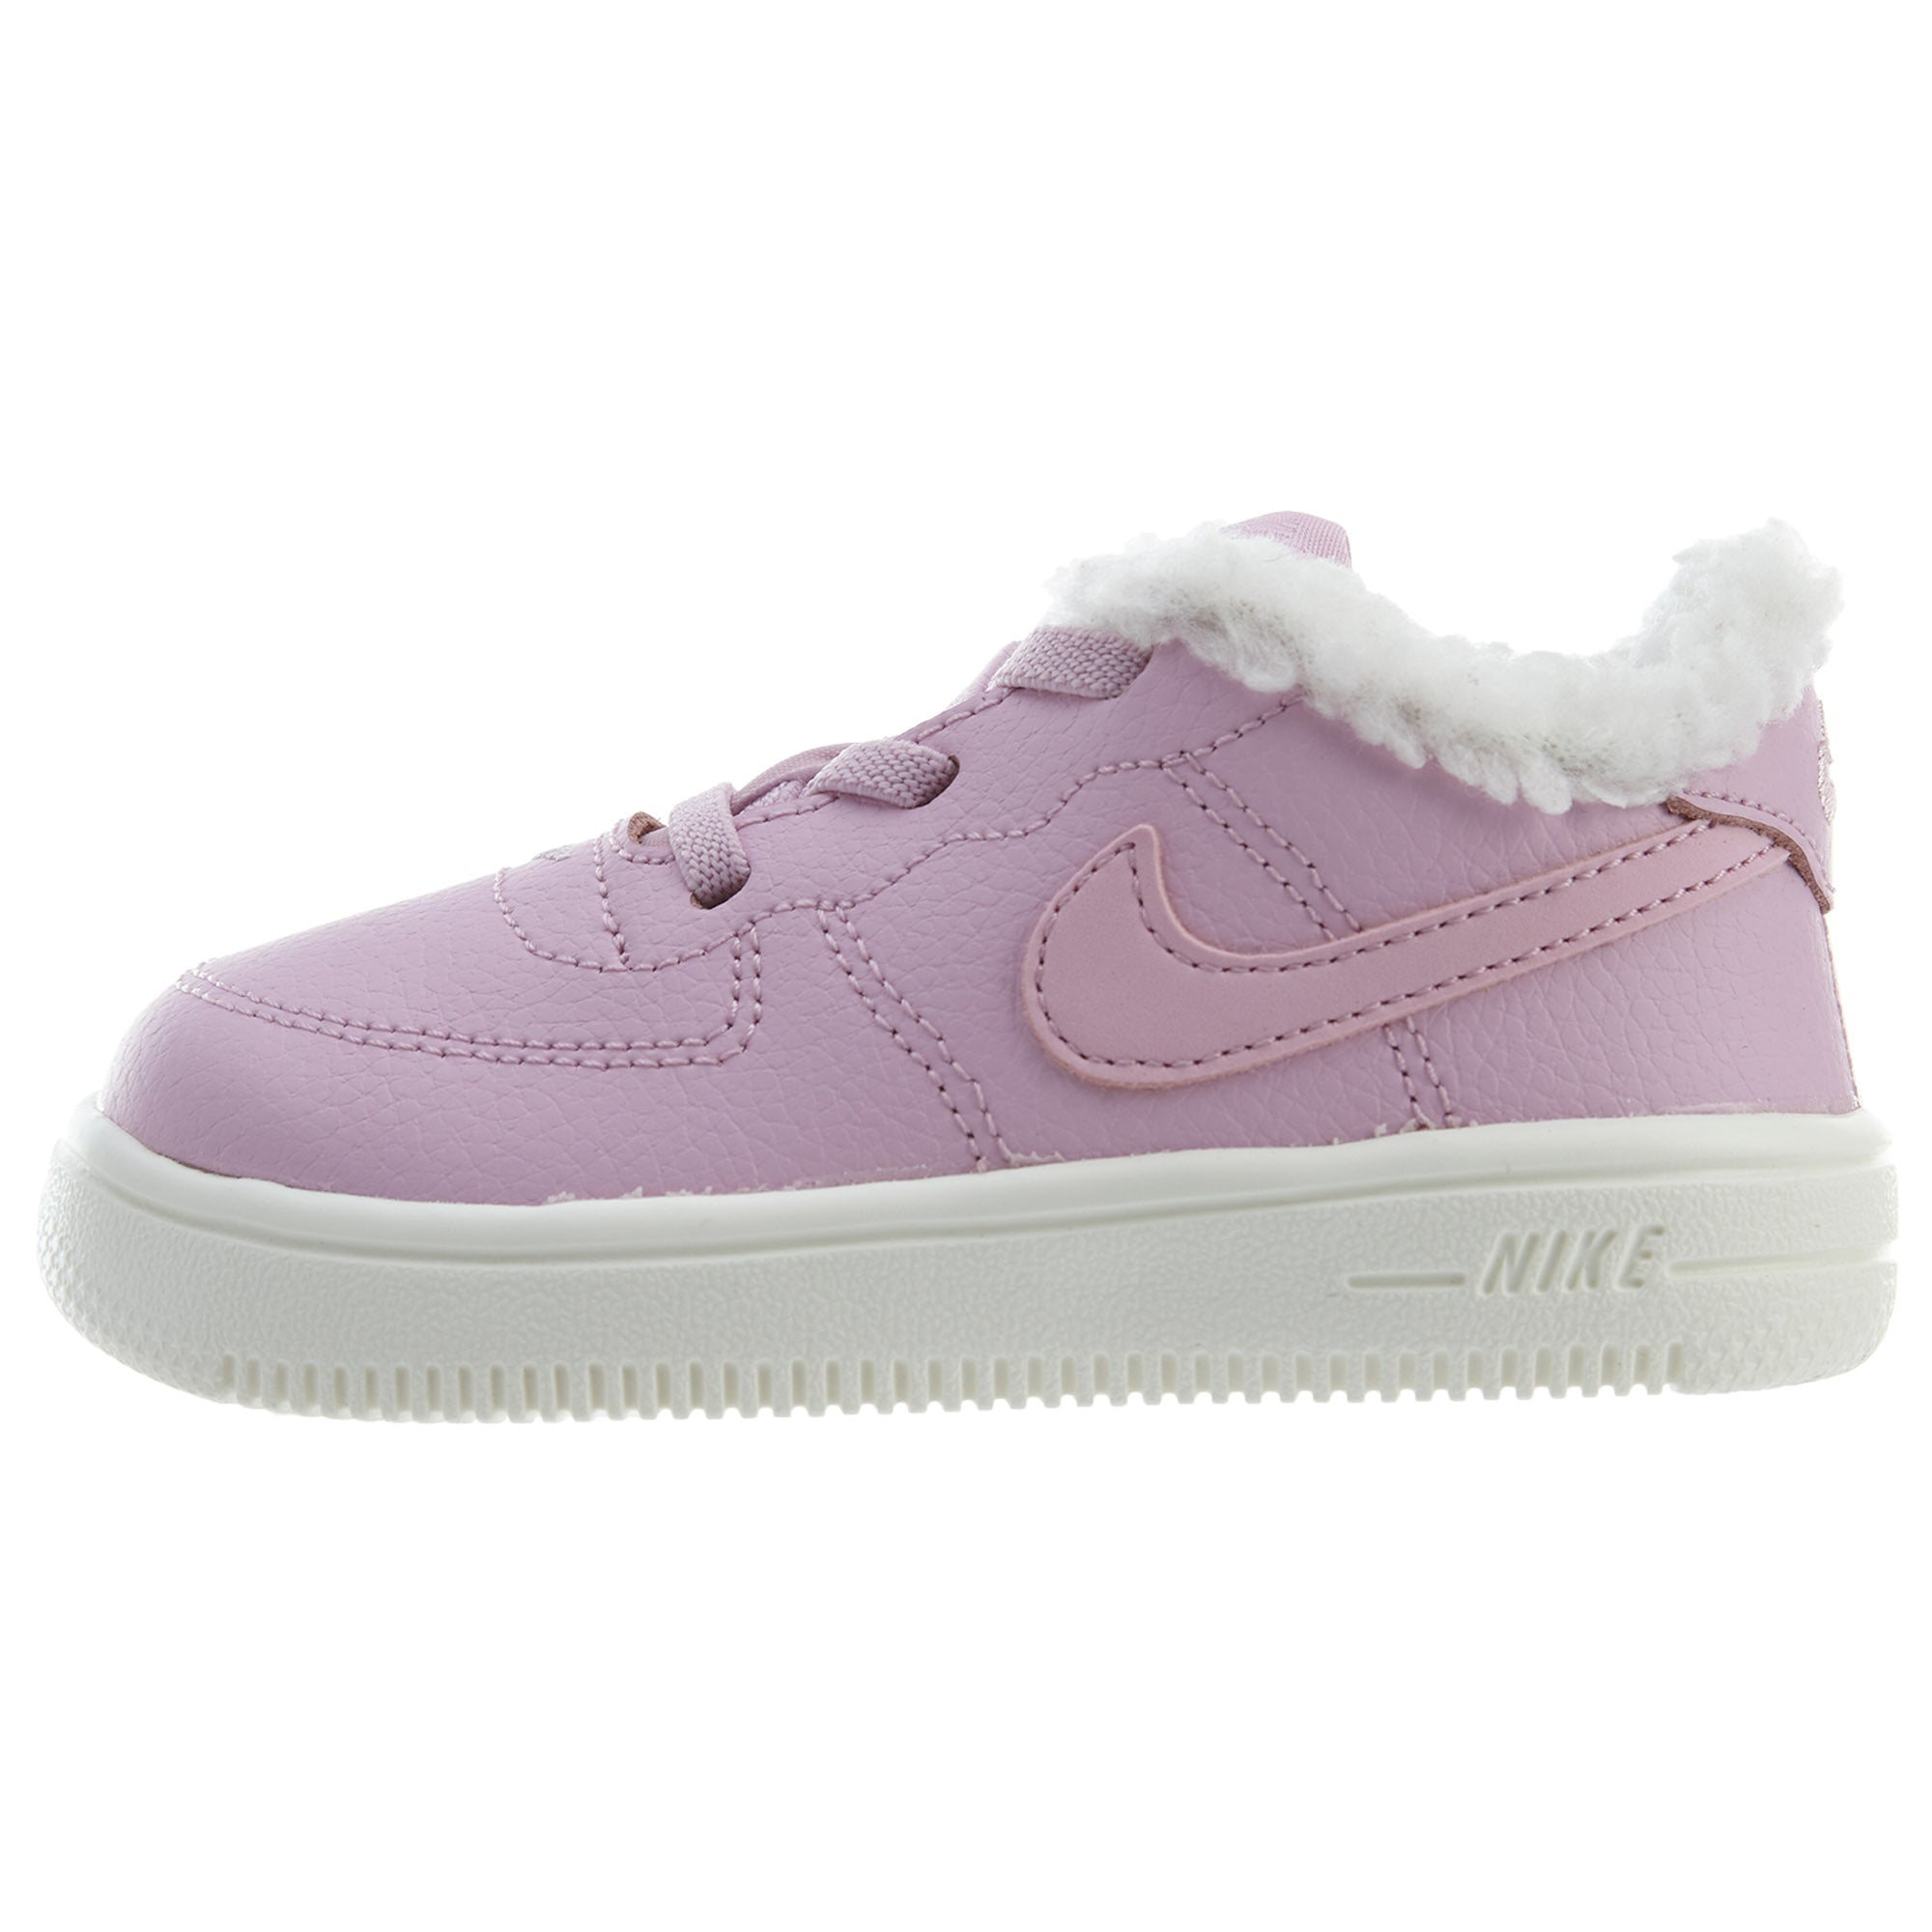 6e1347b6a3dc5 Nike Force 1 ' 18 Se Toddlers Ar1134-600 – Sneaker Experts